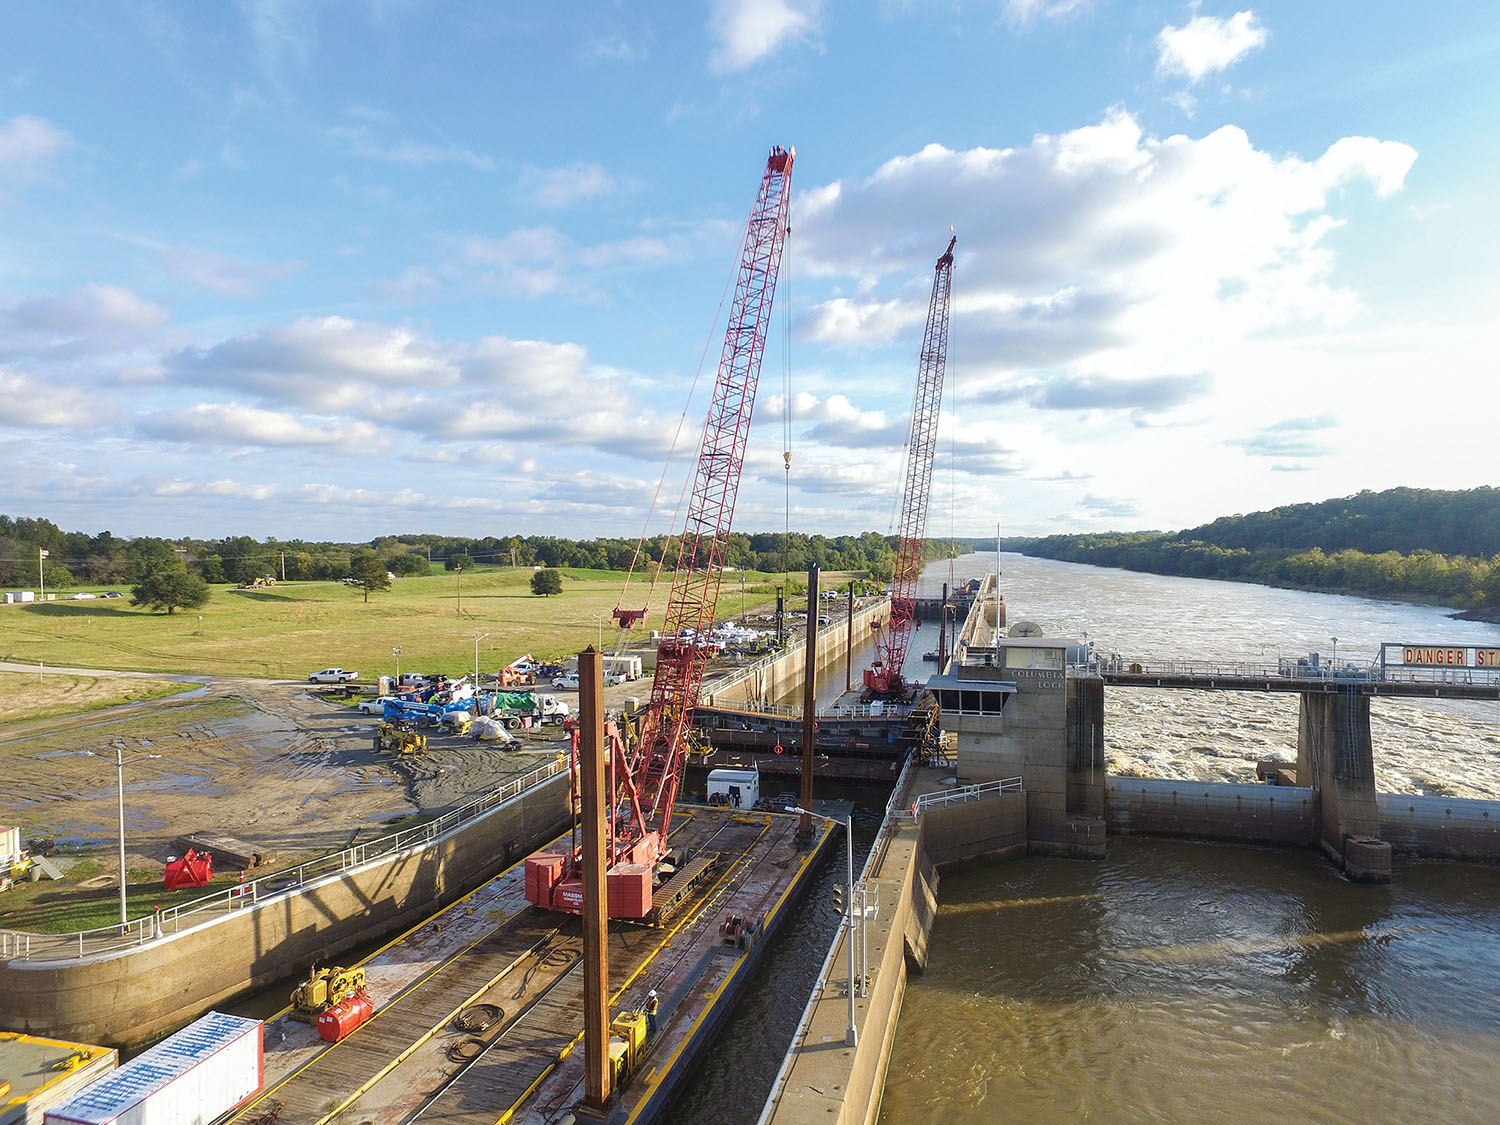 Massman crews at work at Columbia Lock on the Ouachita River. (Photo courtesy of Massman Construction)